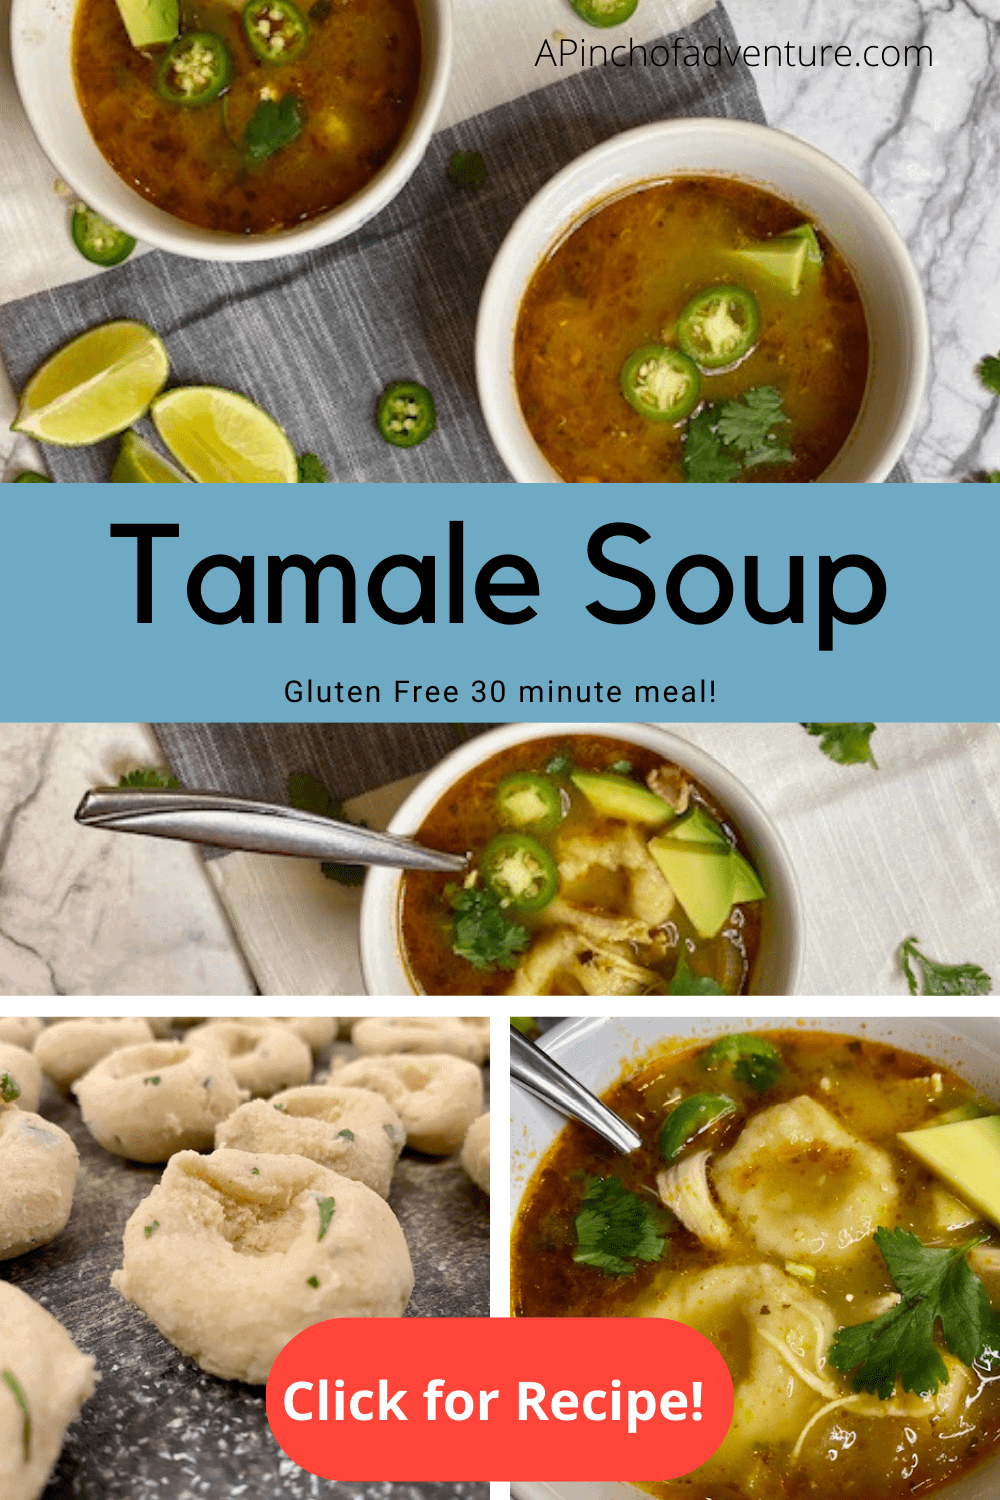 This spicy chicken and dumplings soup is the perfect gluten free recipe out there! Made with Corn Masa Dumplings (chochoyotes). This is comfort food with a twist. Made with salsa verde and rotisserie chicken, it such a fast recipe especially if you are looking for easy recipes. It is the best gluten free and dairy free recipe! Sopa de pollo